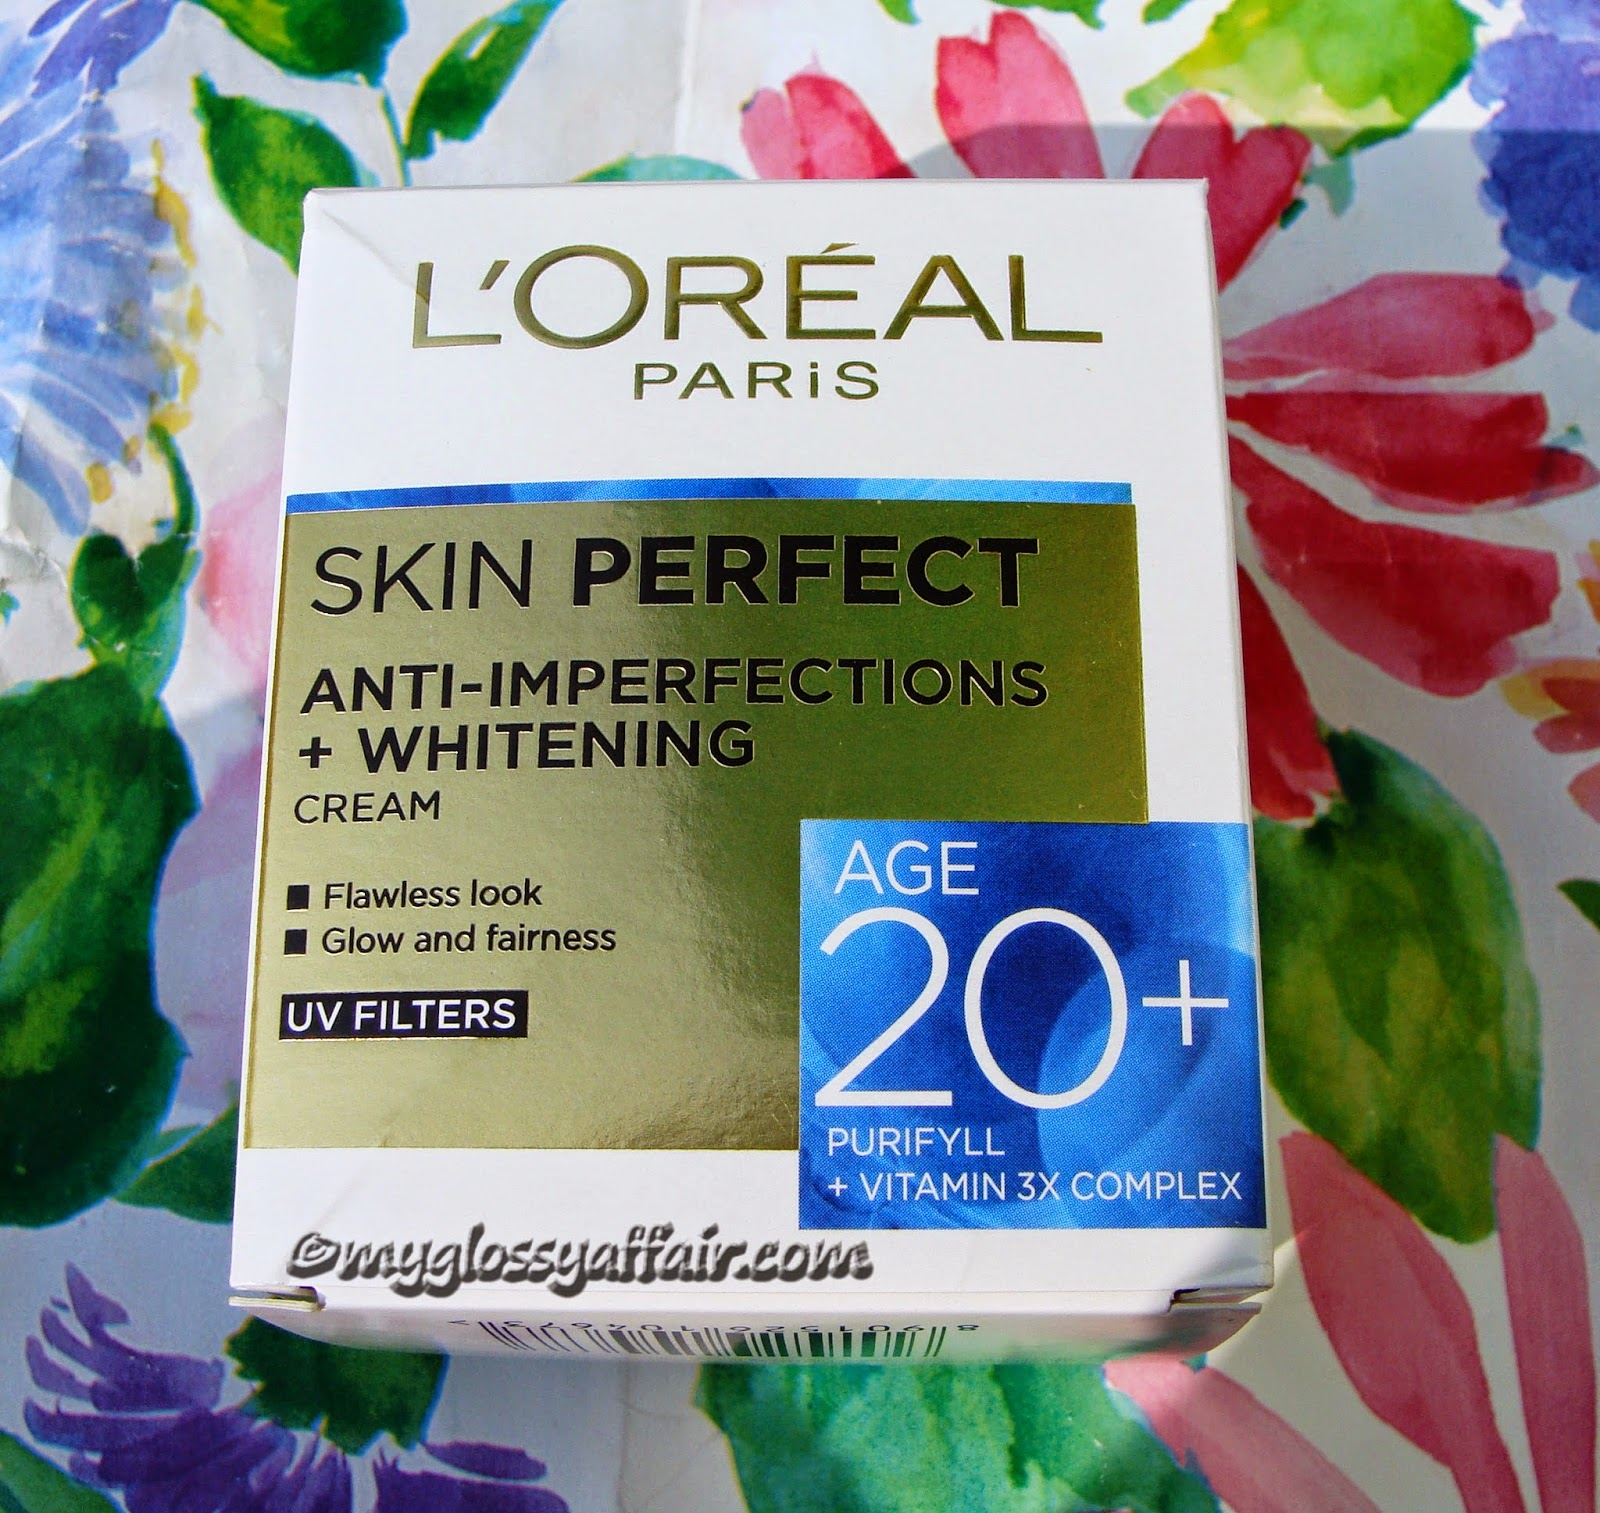 L'oreal Paris Skin Perfect Anti- Imperfections + Whitening Cream 20+ Review